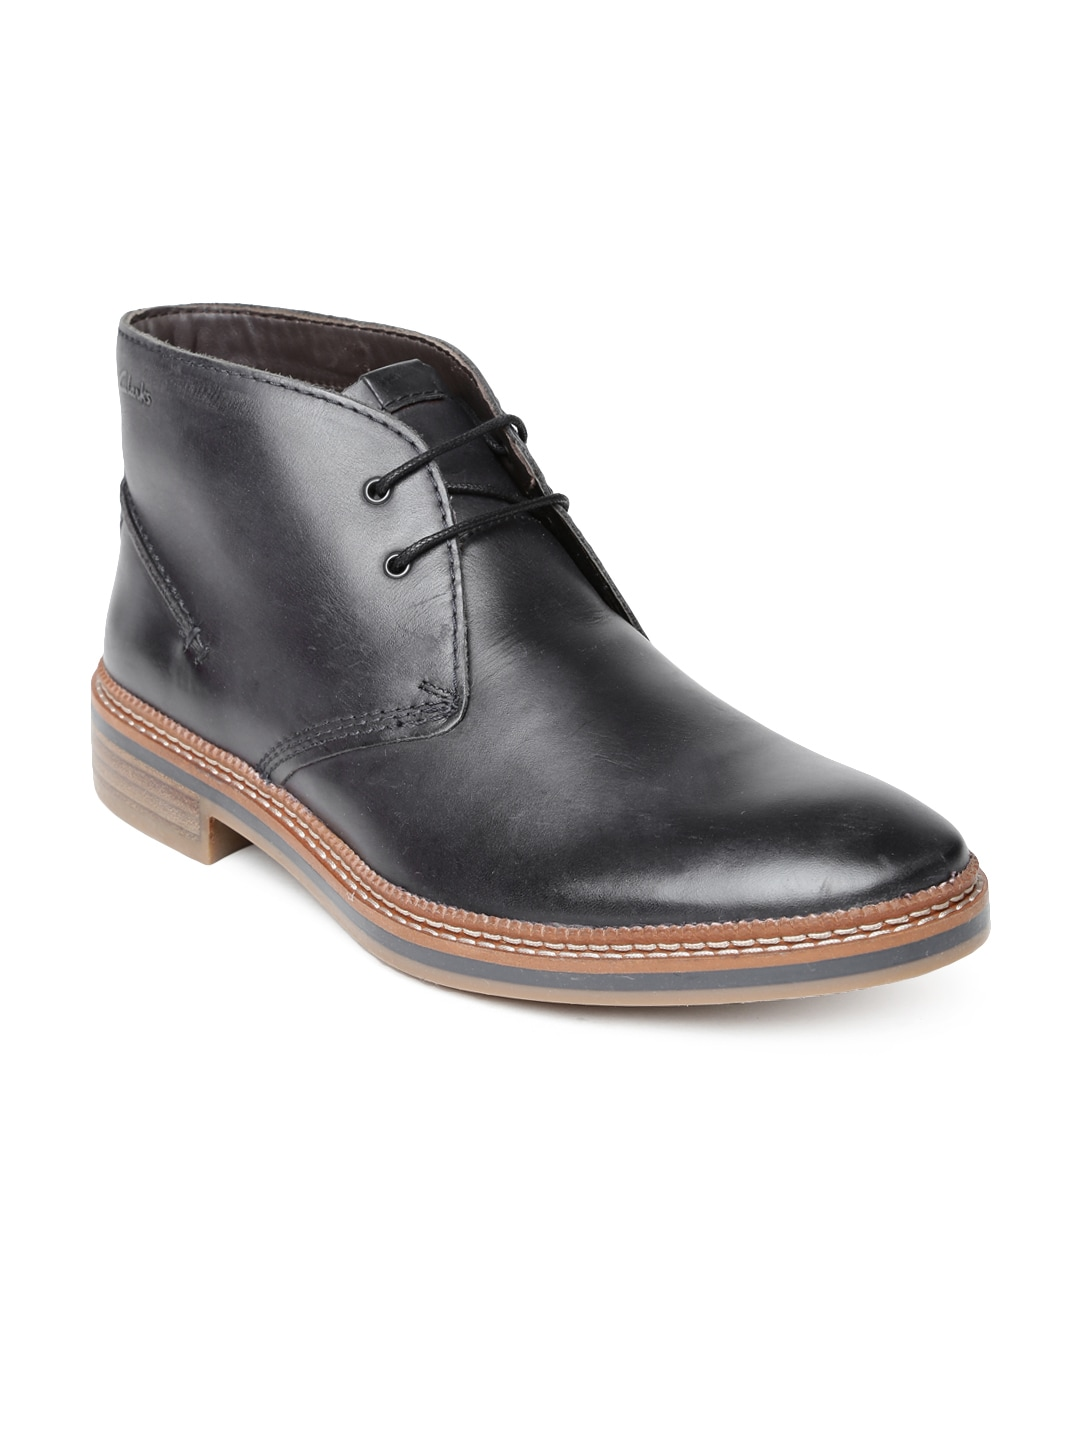 a7eef18540b Shoes - Buy Shoes for Men